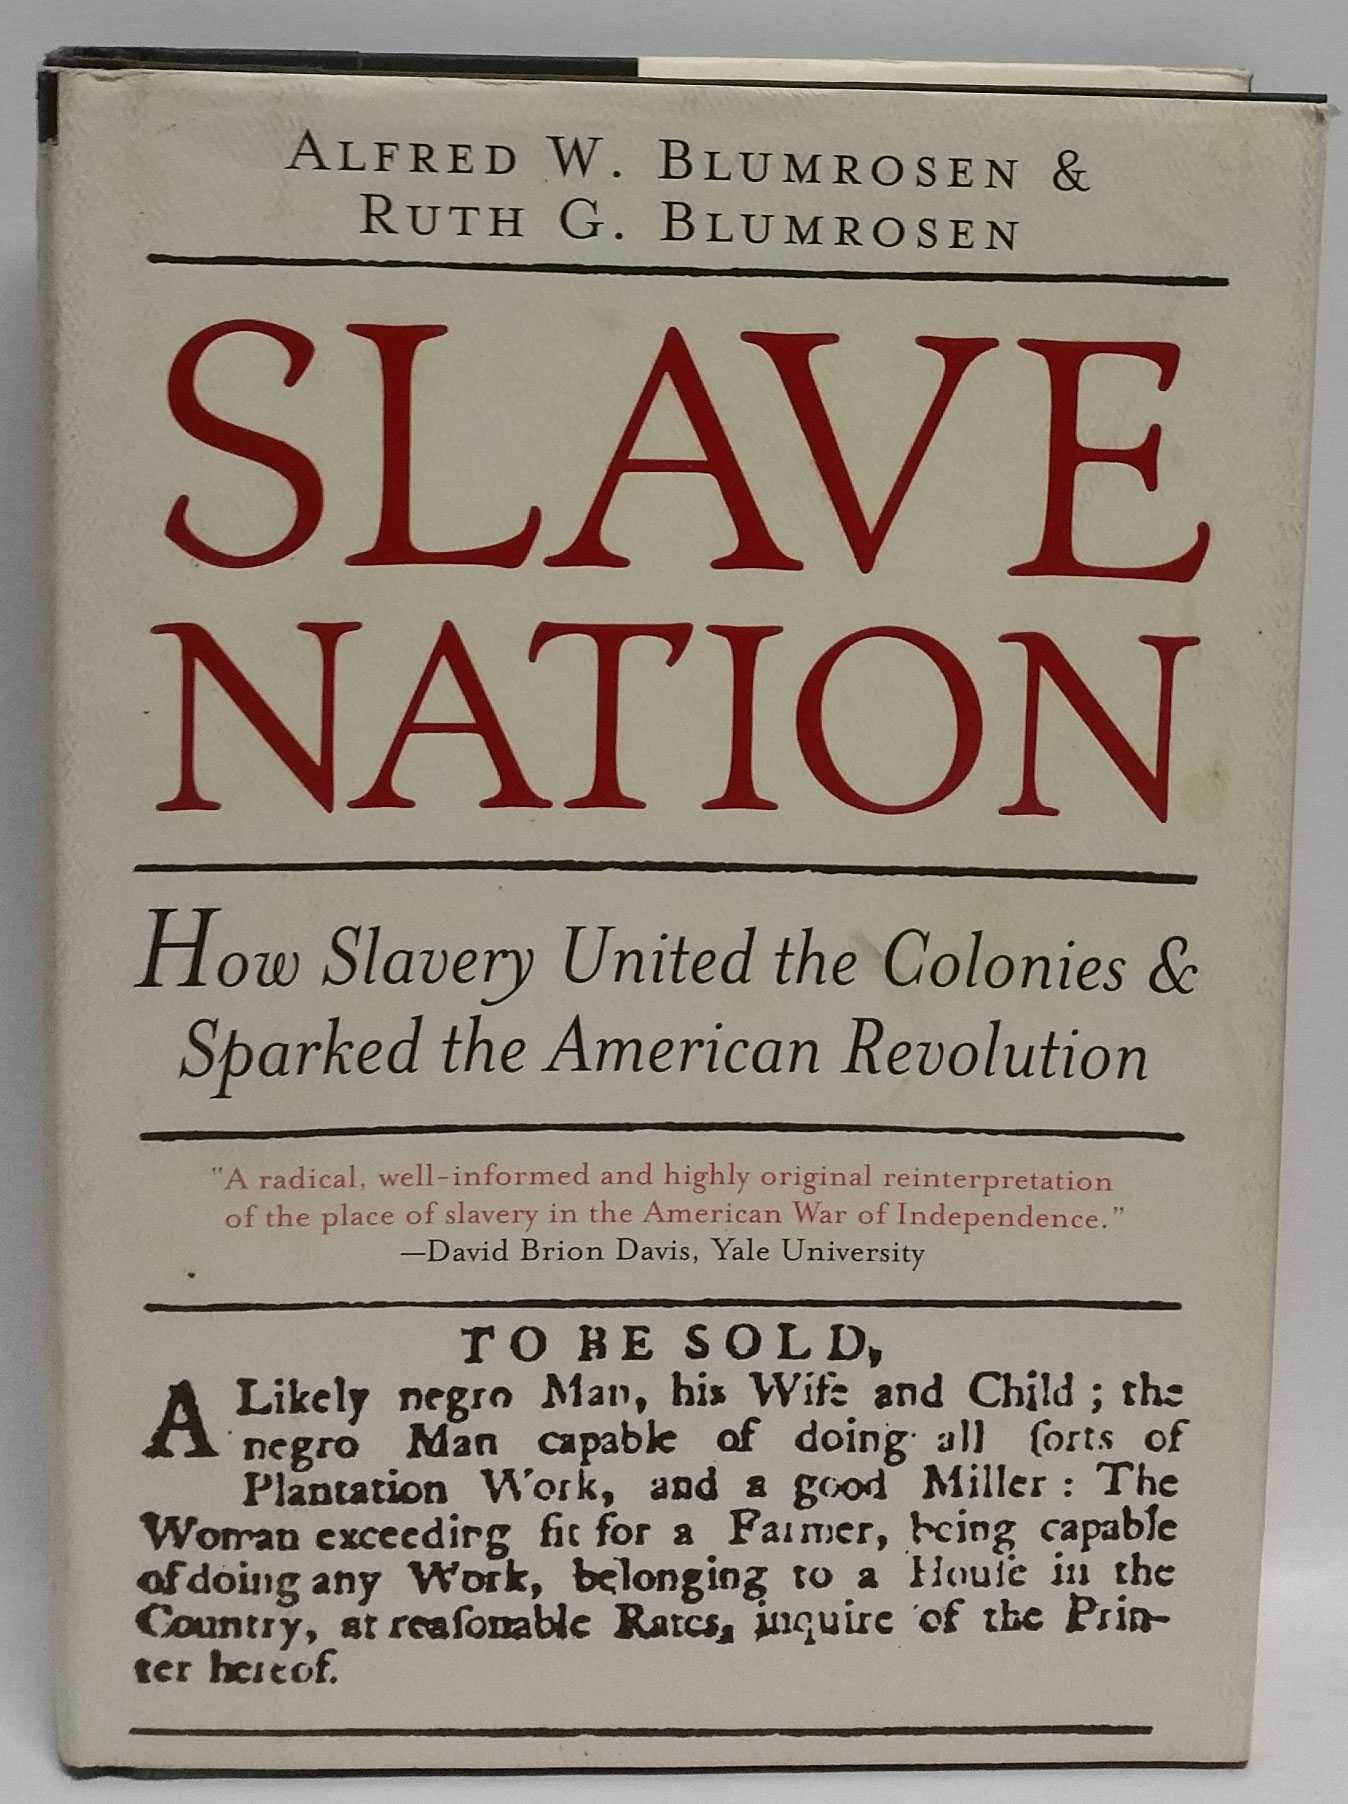 Slave Nation: How Slavery United the Colonies & Sparked the American Revolution, Alfred W. Blumrosen; Ruth G. Blumrosen